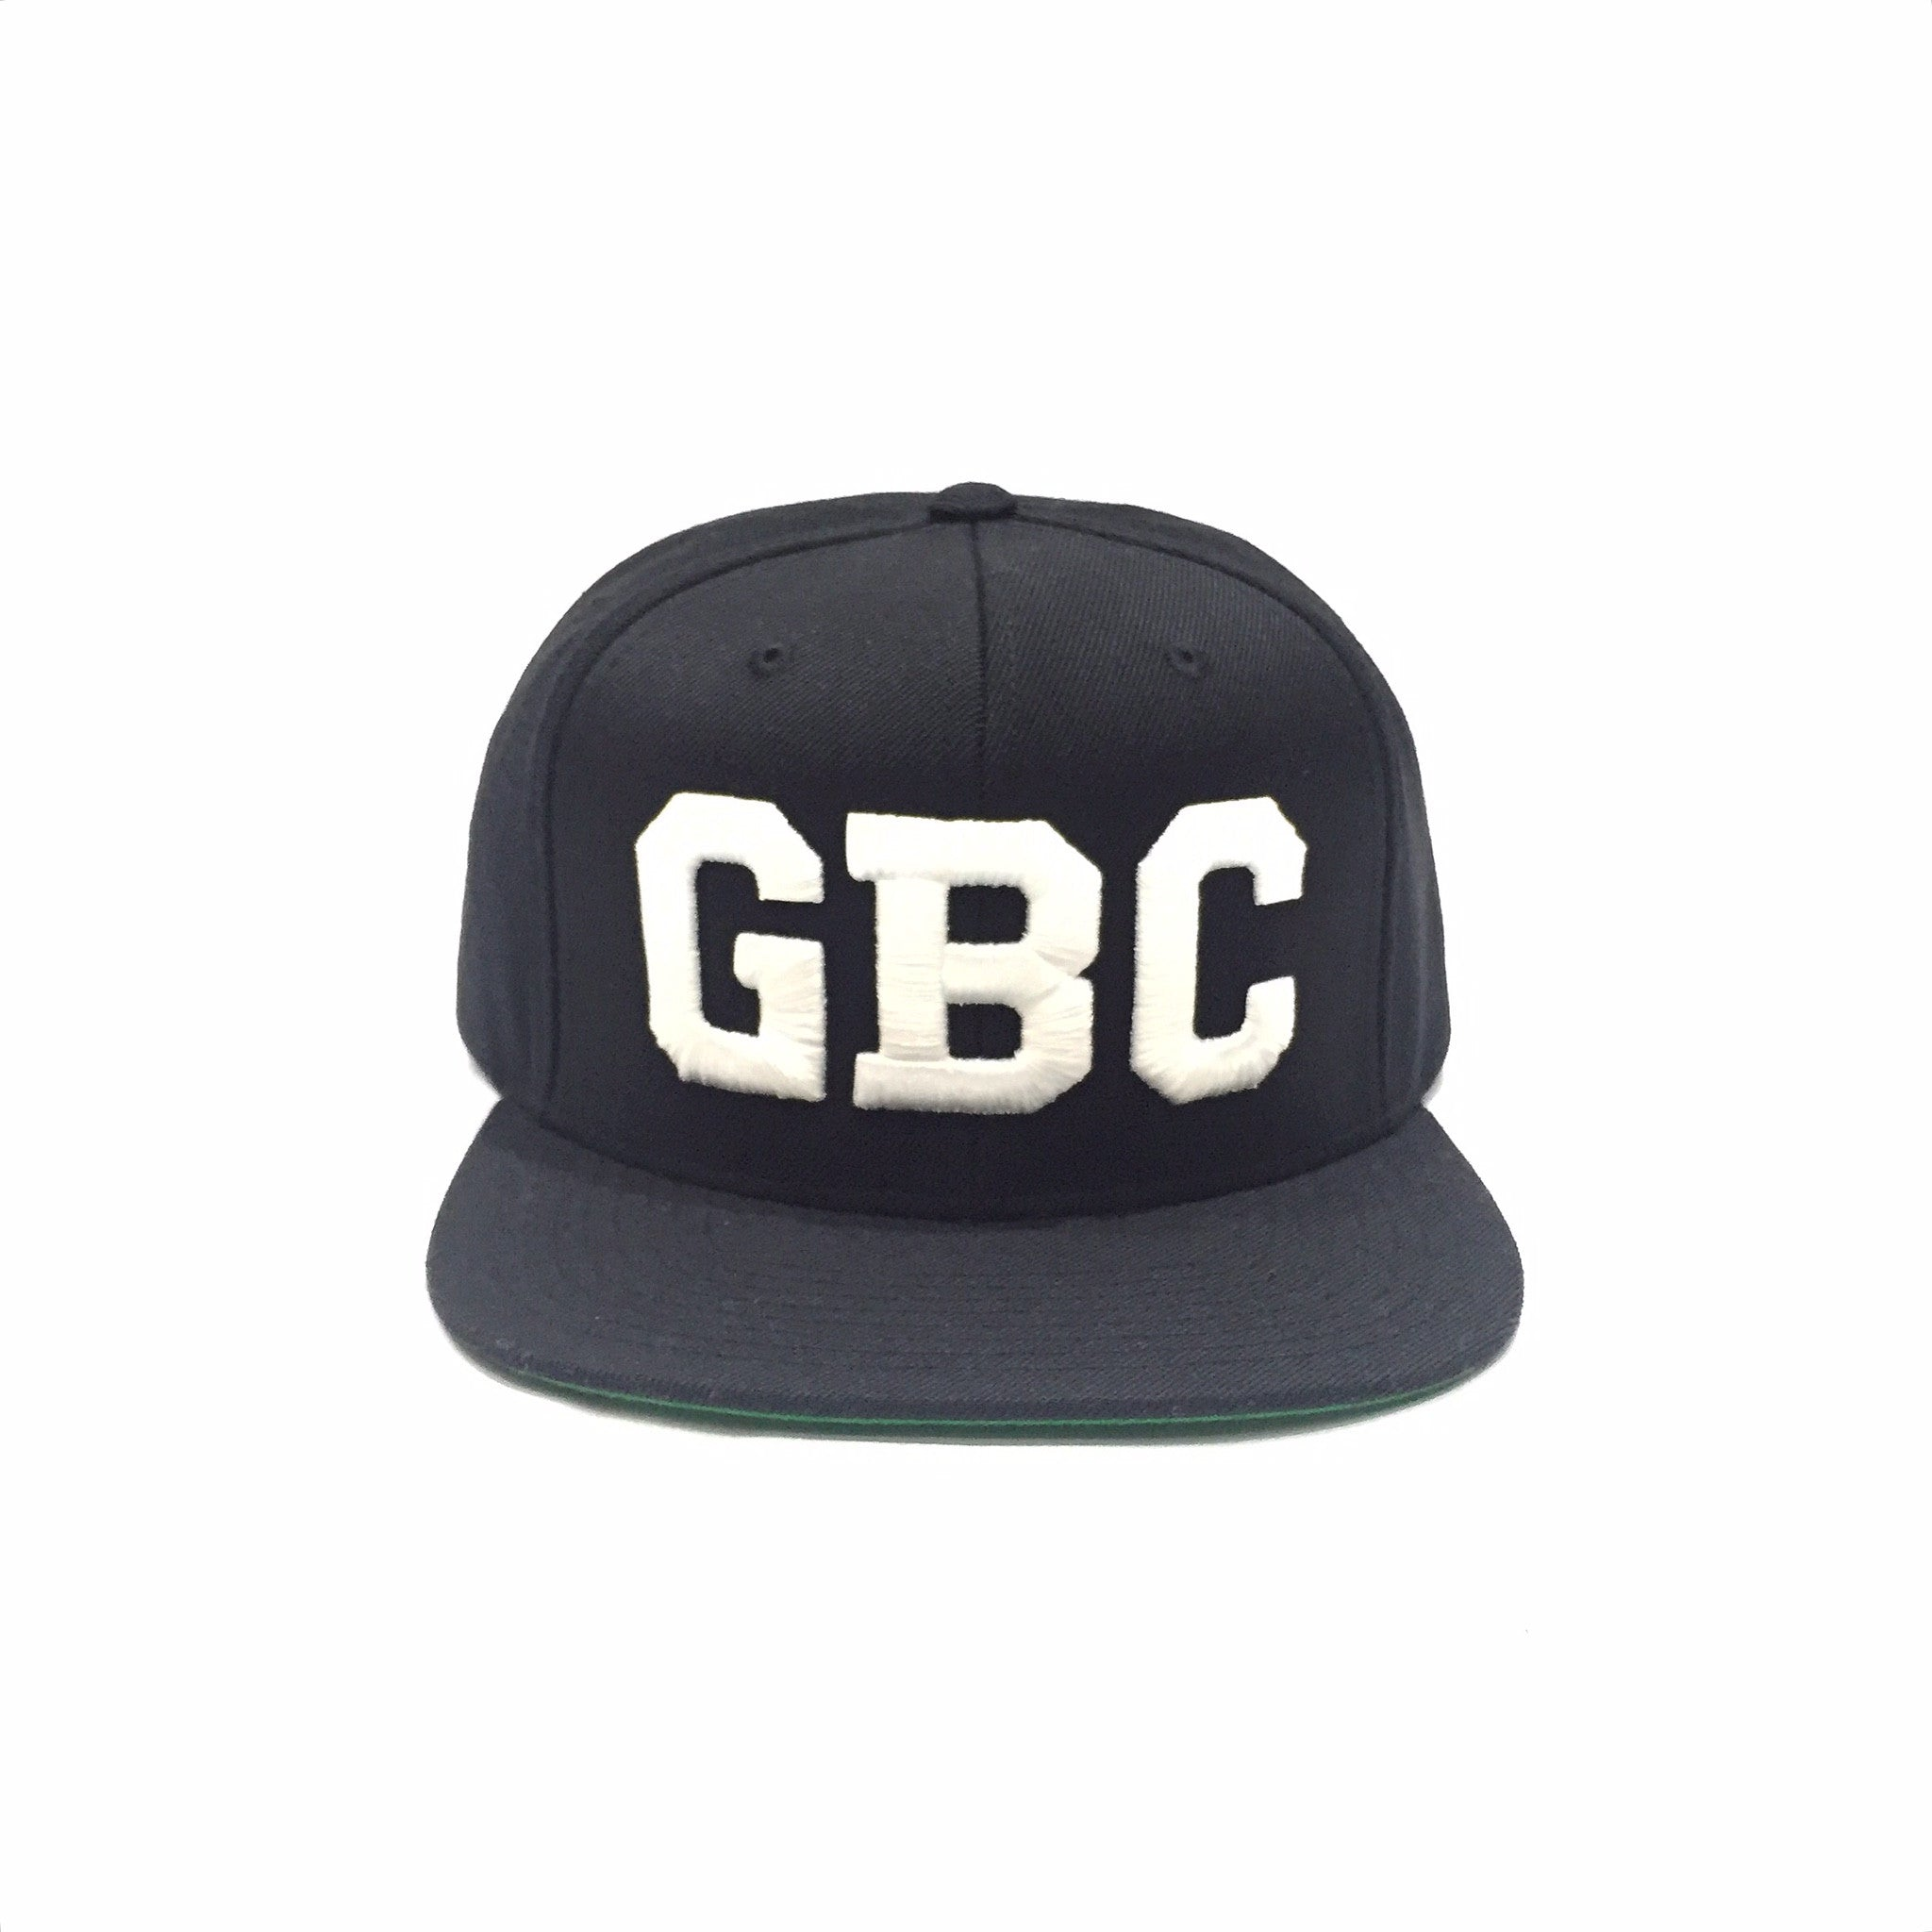 "Guy Benson Collection ""GBC"" SnapBack Hat - Black/White"